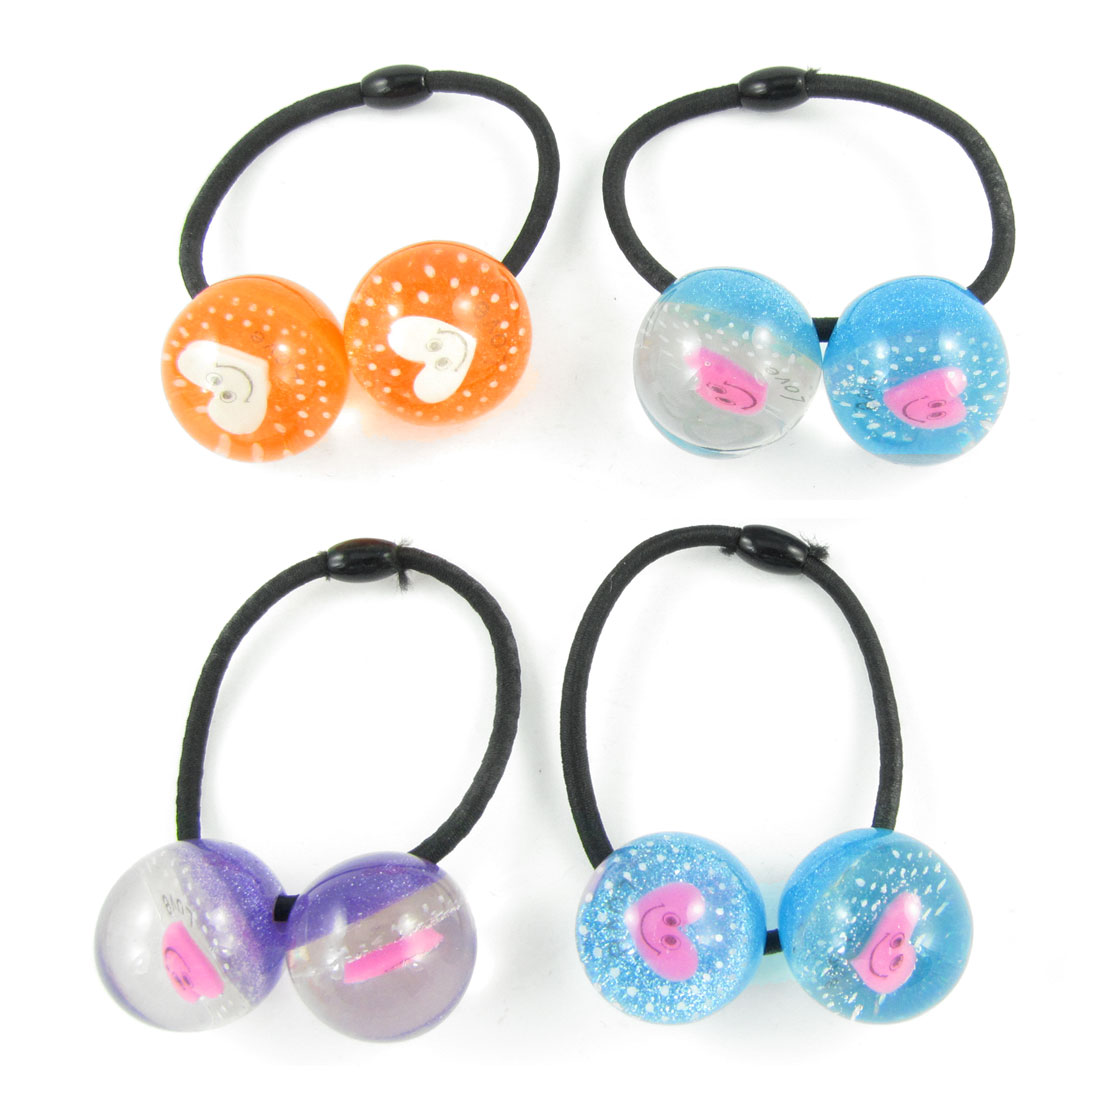 4pcs Girls Plastic Heart Smile Face Inlaid Round Beads Decor Elastic Hair Band